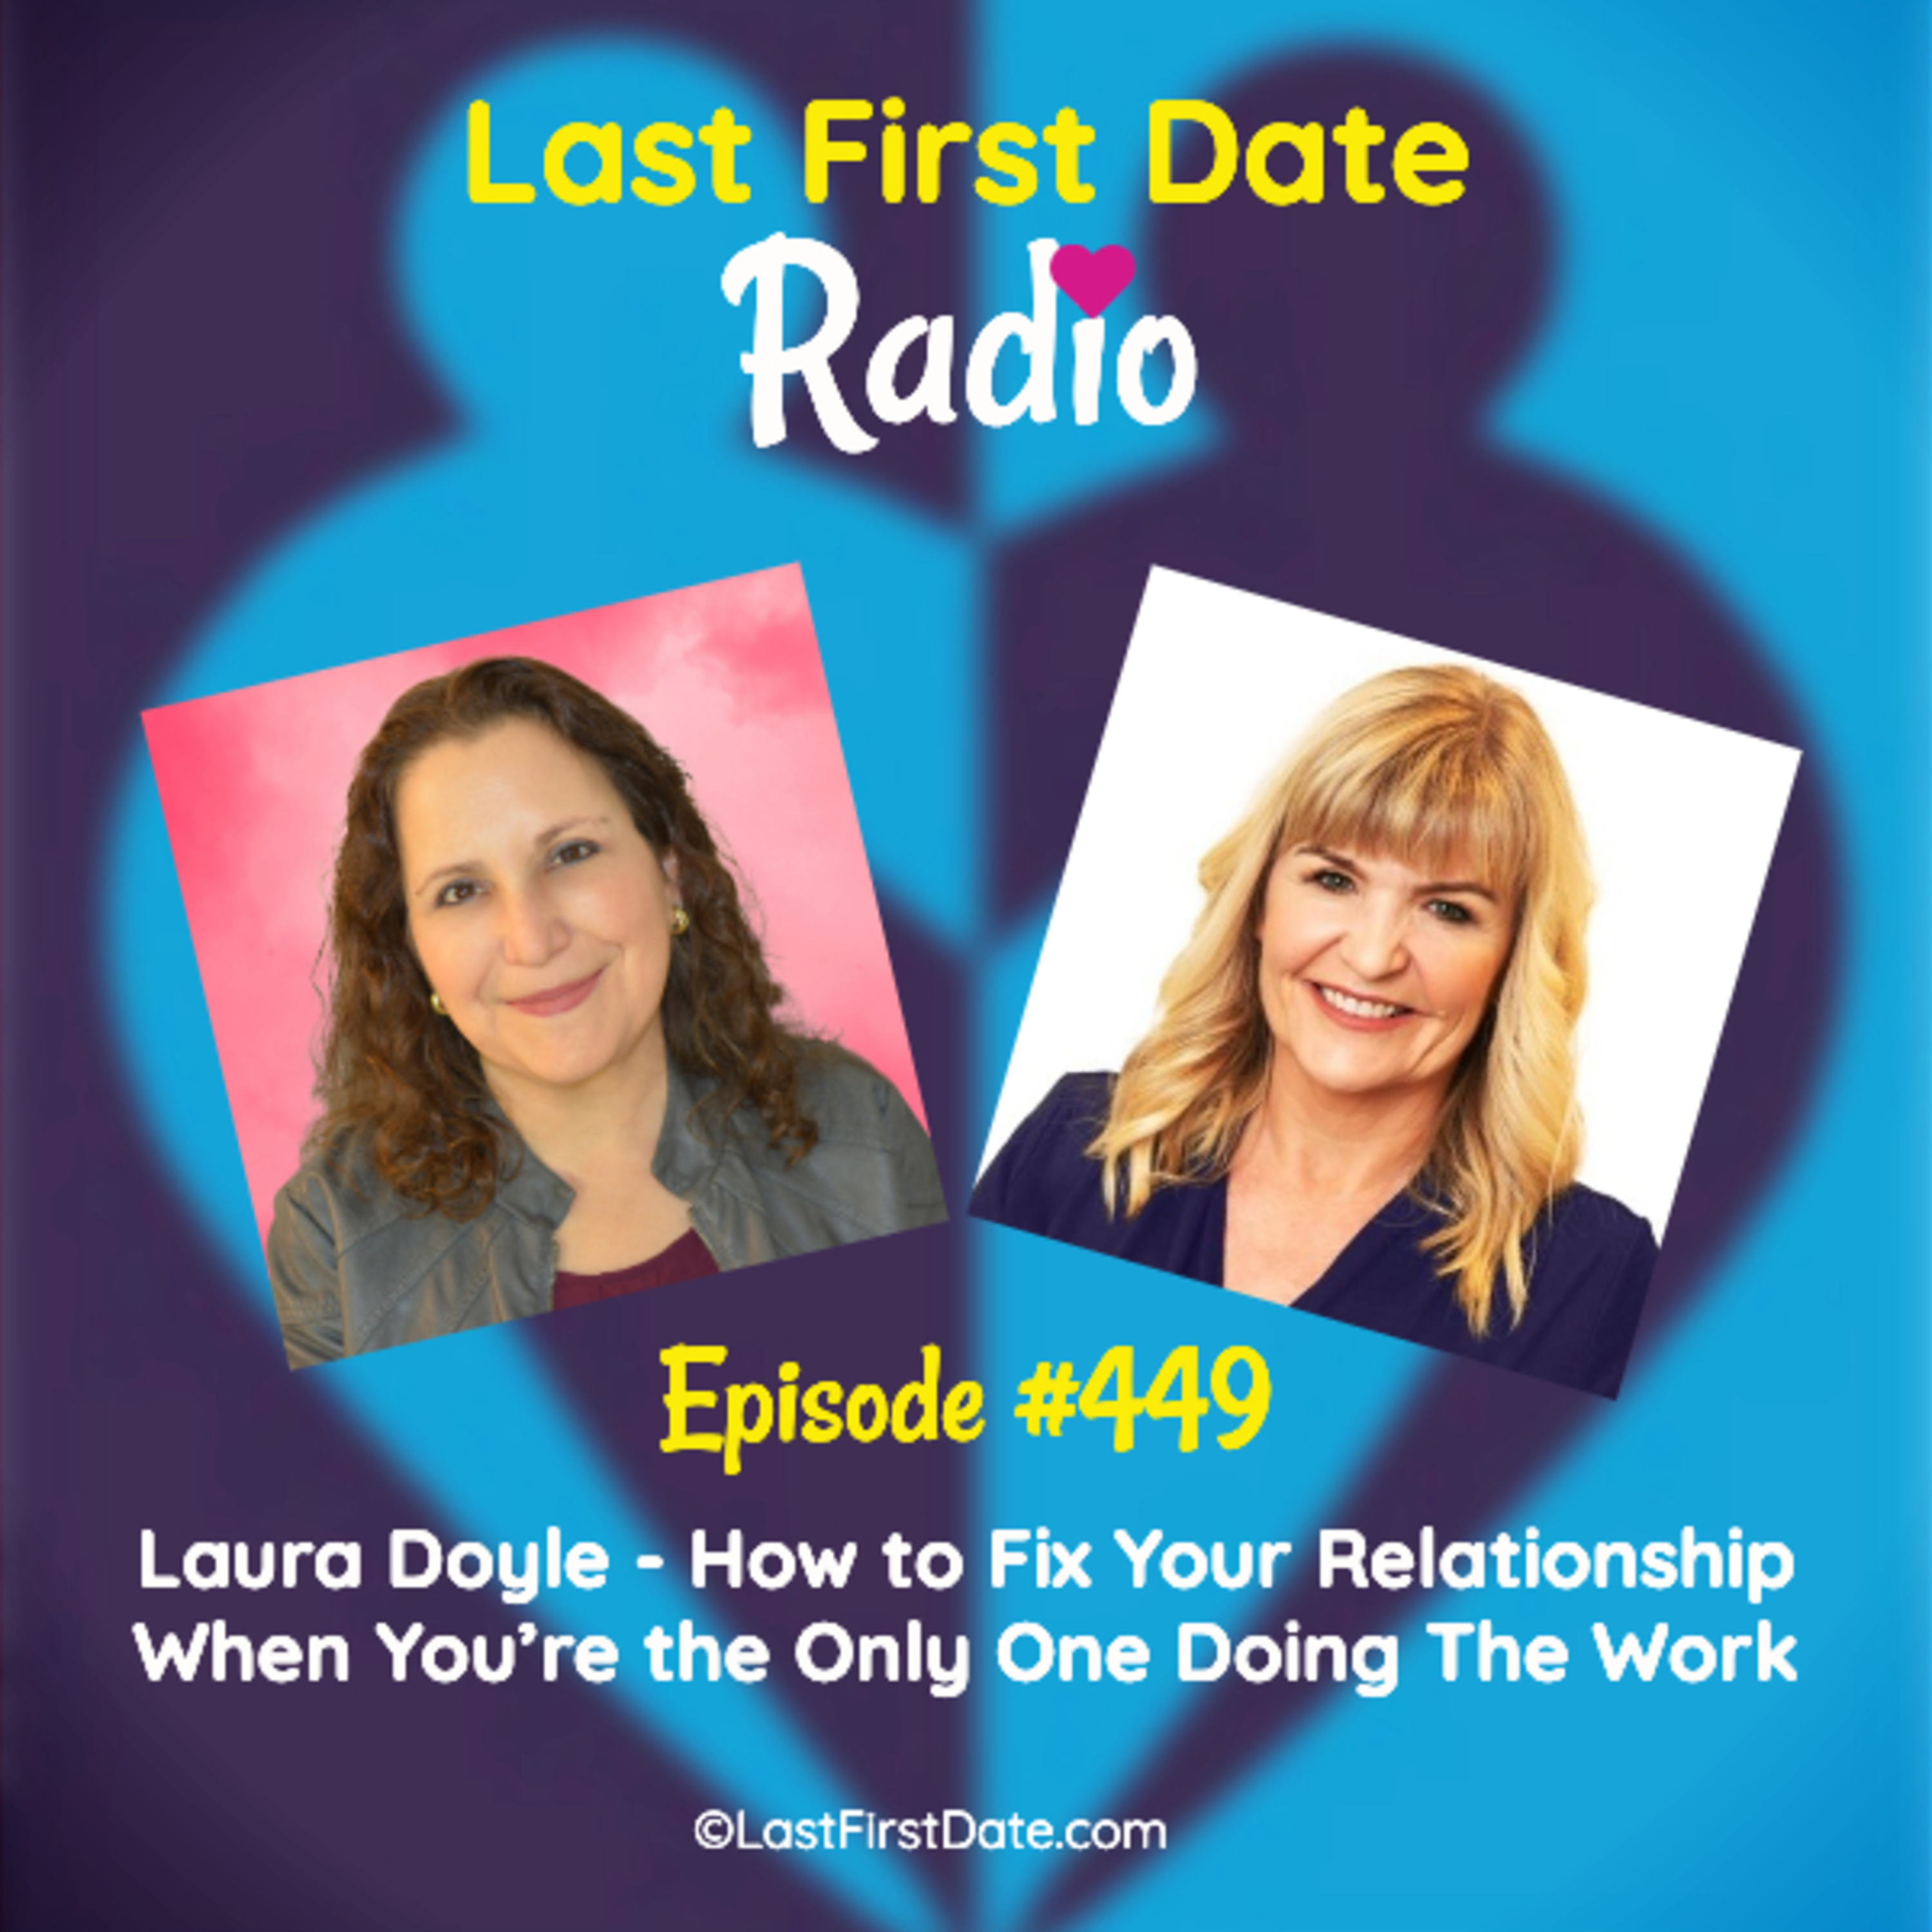 Last First Date Radio - EP 449: Laura Doyle - How to Fix Your Relationship When You're the Only One Doing The Work